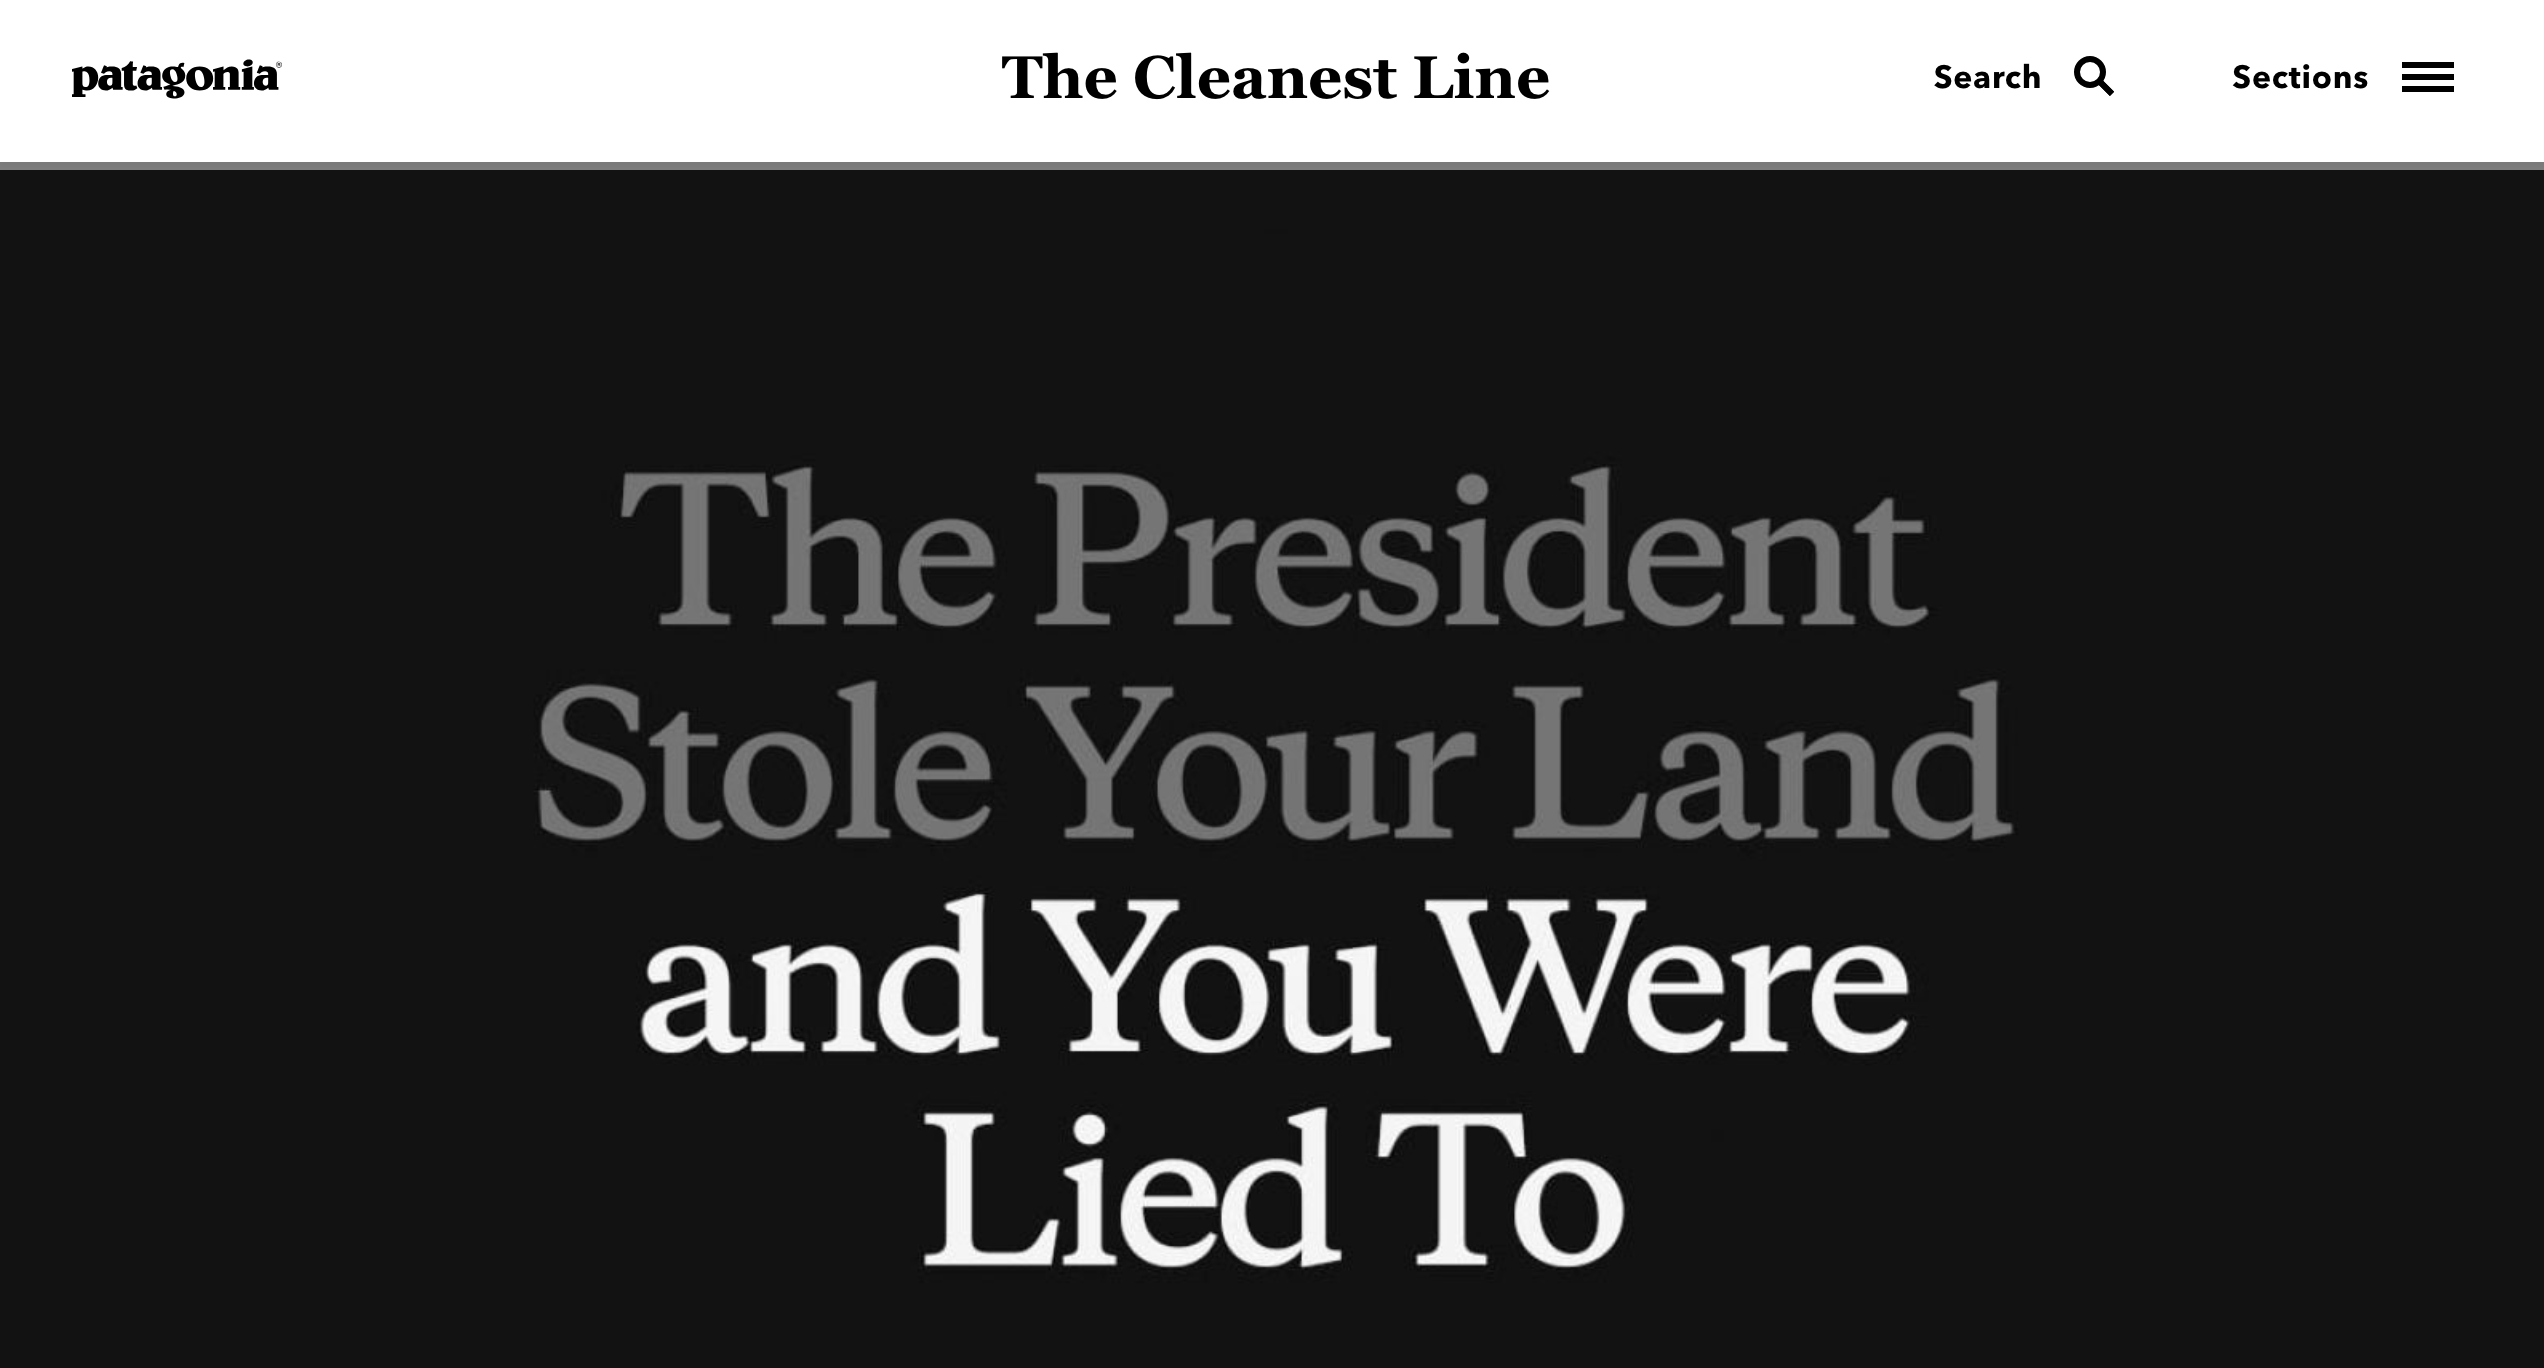 Patagonia_president stole your land.png